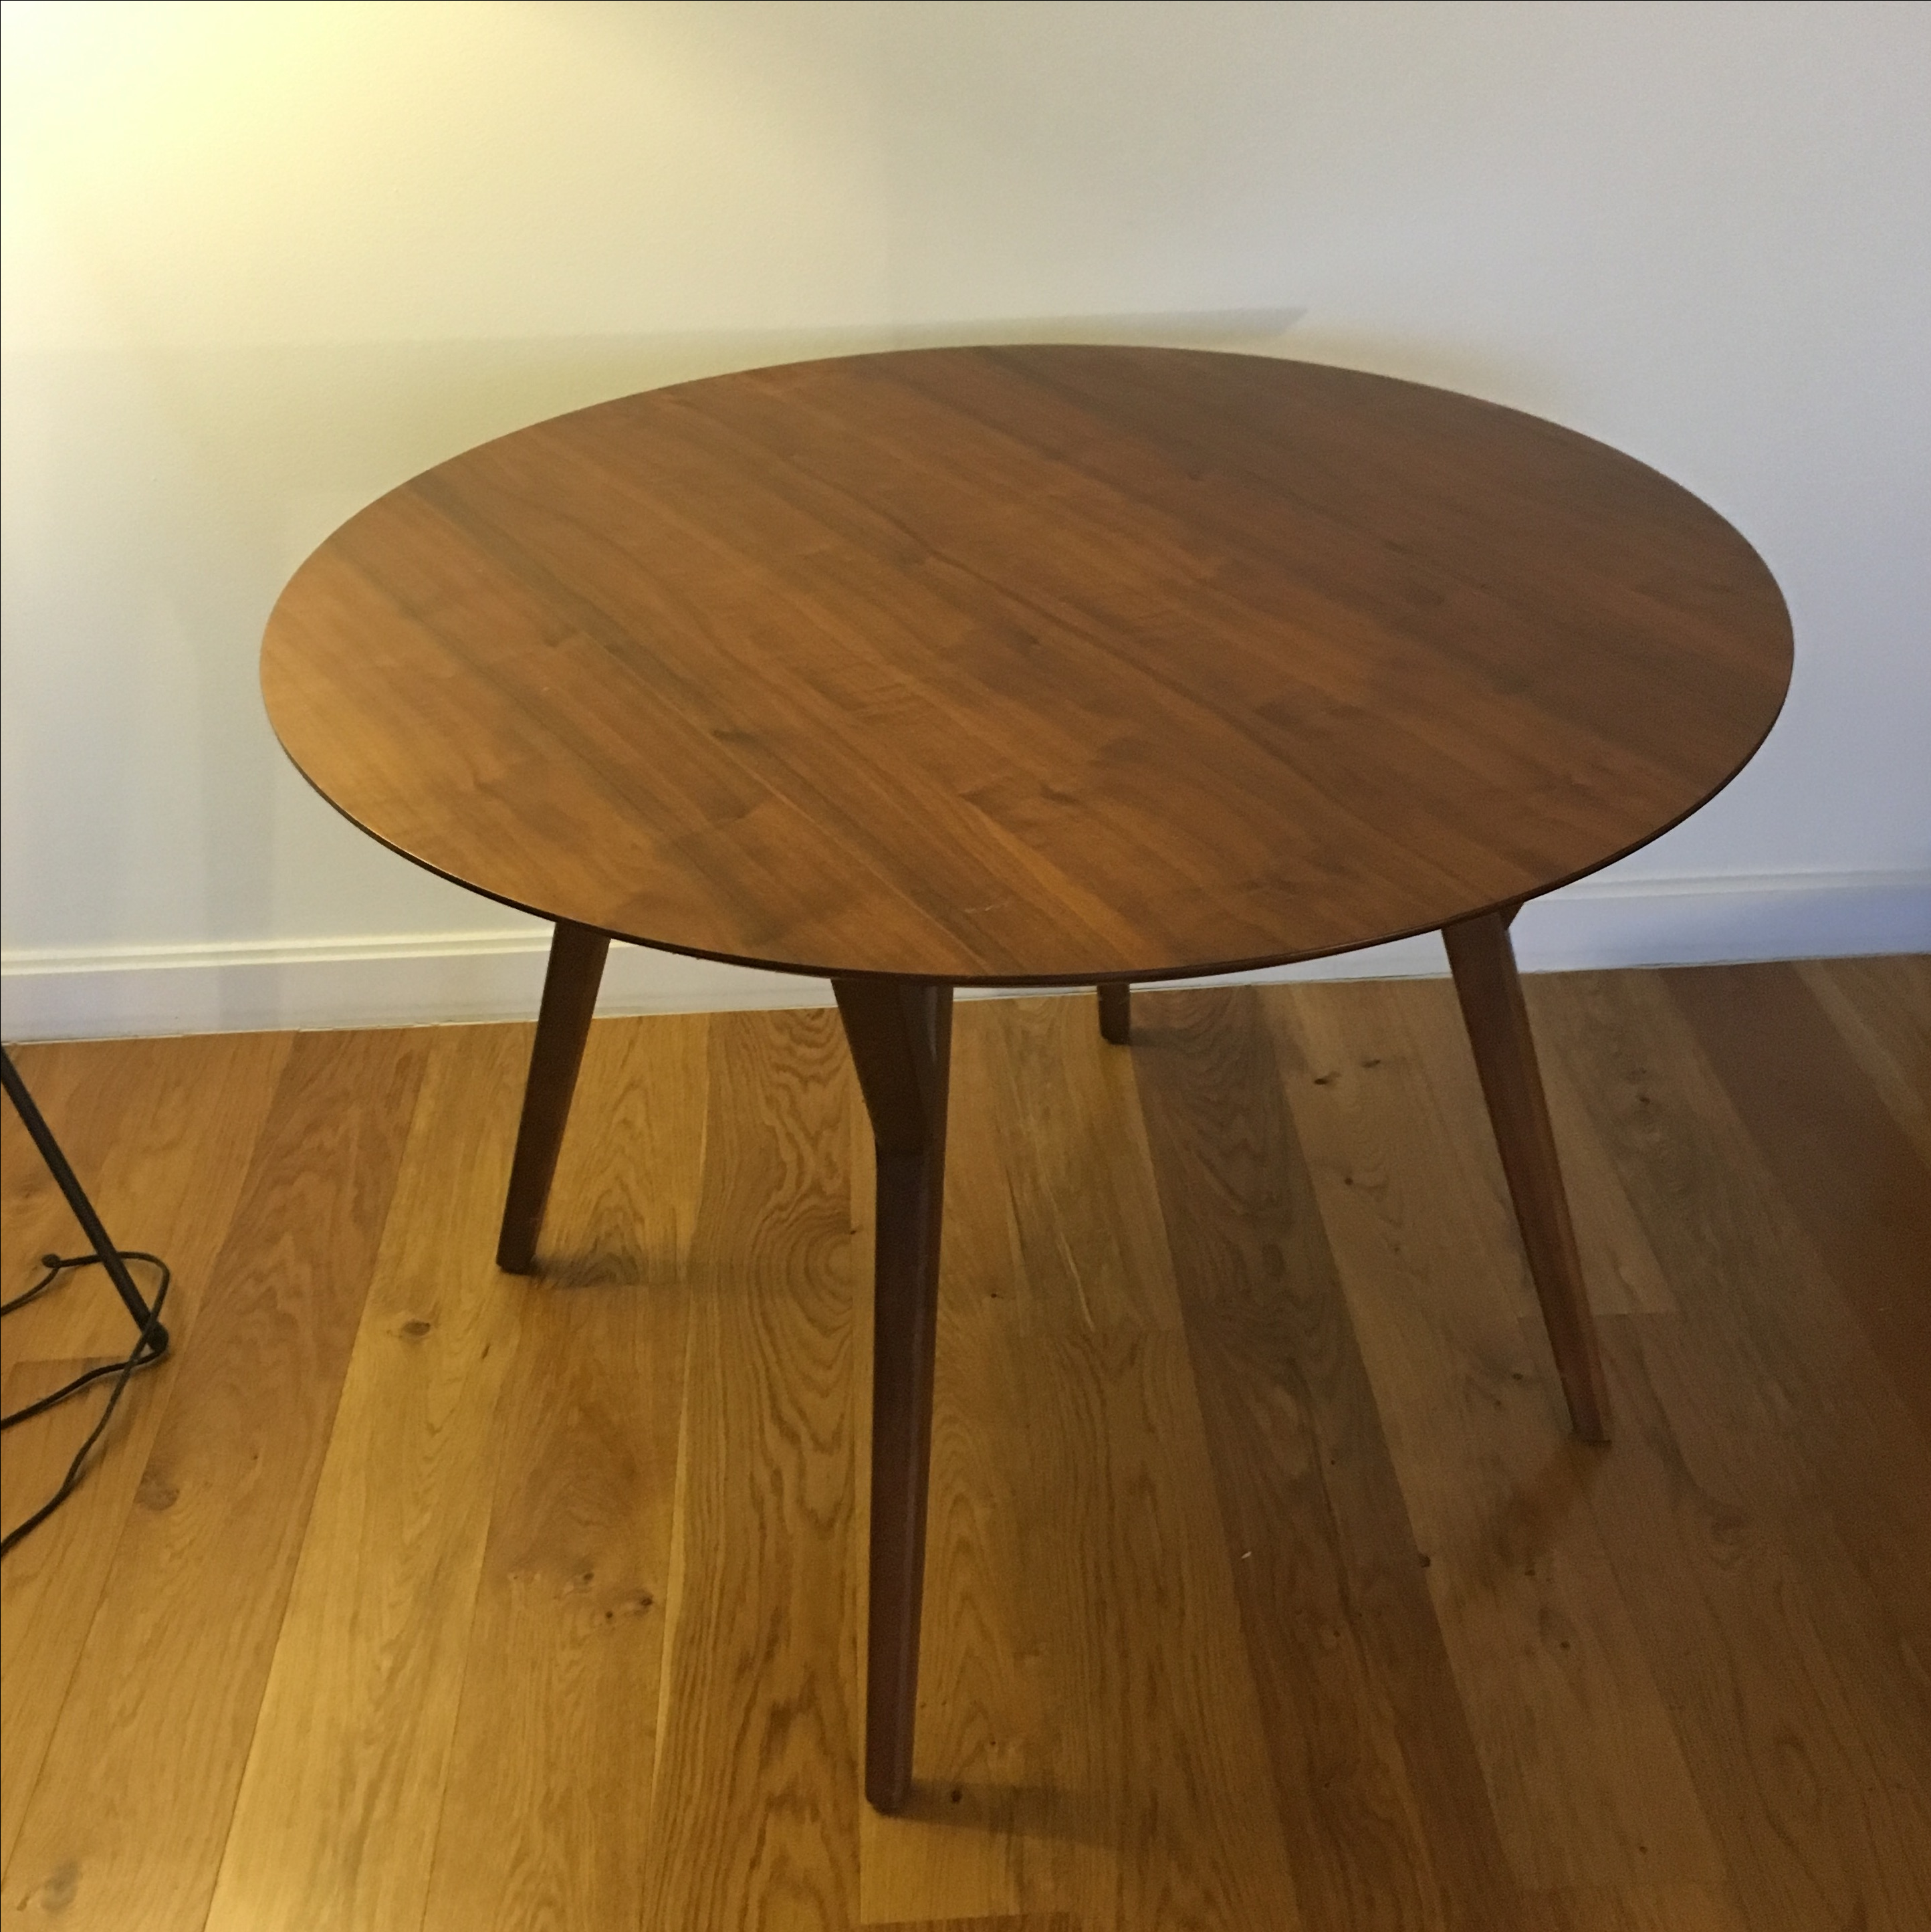 West Elm Mid Century Round Dining Table Chairish : 25292070 3bf6 4f0d a5ae 616cbadce2e1aspectfitampwidth640ampheight640 from www.chairish.com size 640 x 640 jpeg 36kB